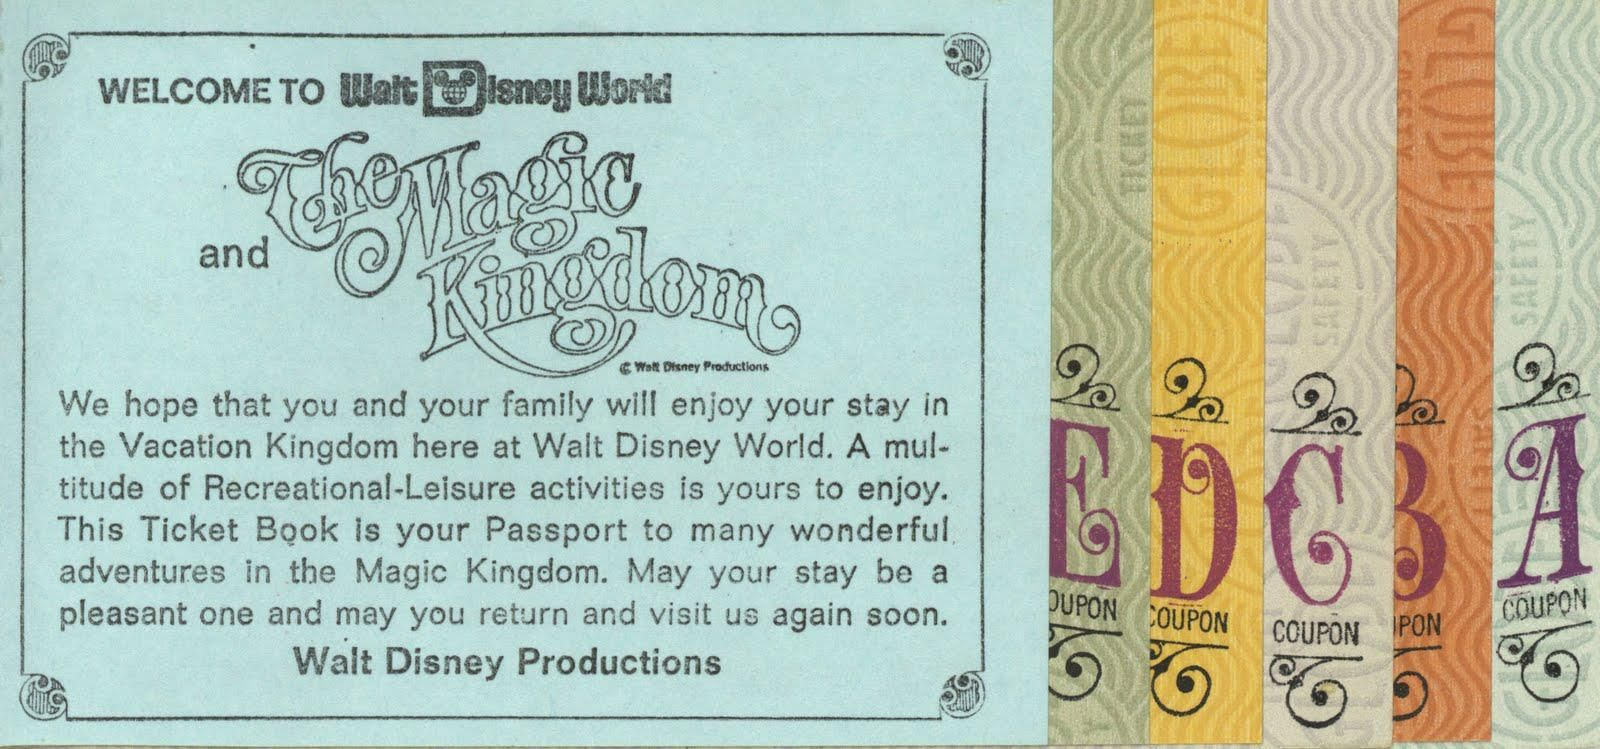 Magic Kingdom Ticket Pack With The Coveted E Tickets Who Wants Some Left Over A And B Tickets Walt Disney Word Disney Word Walt Disney World Tickets